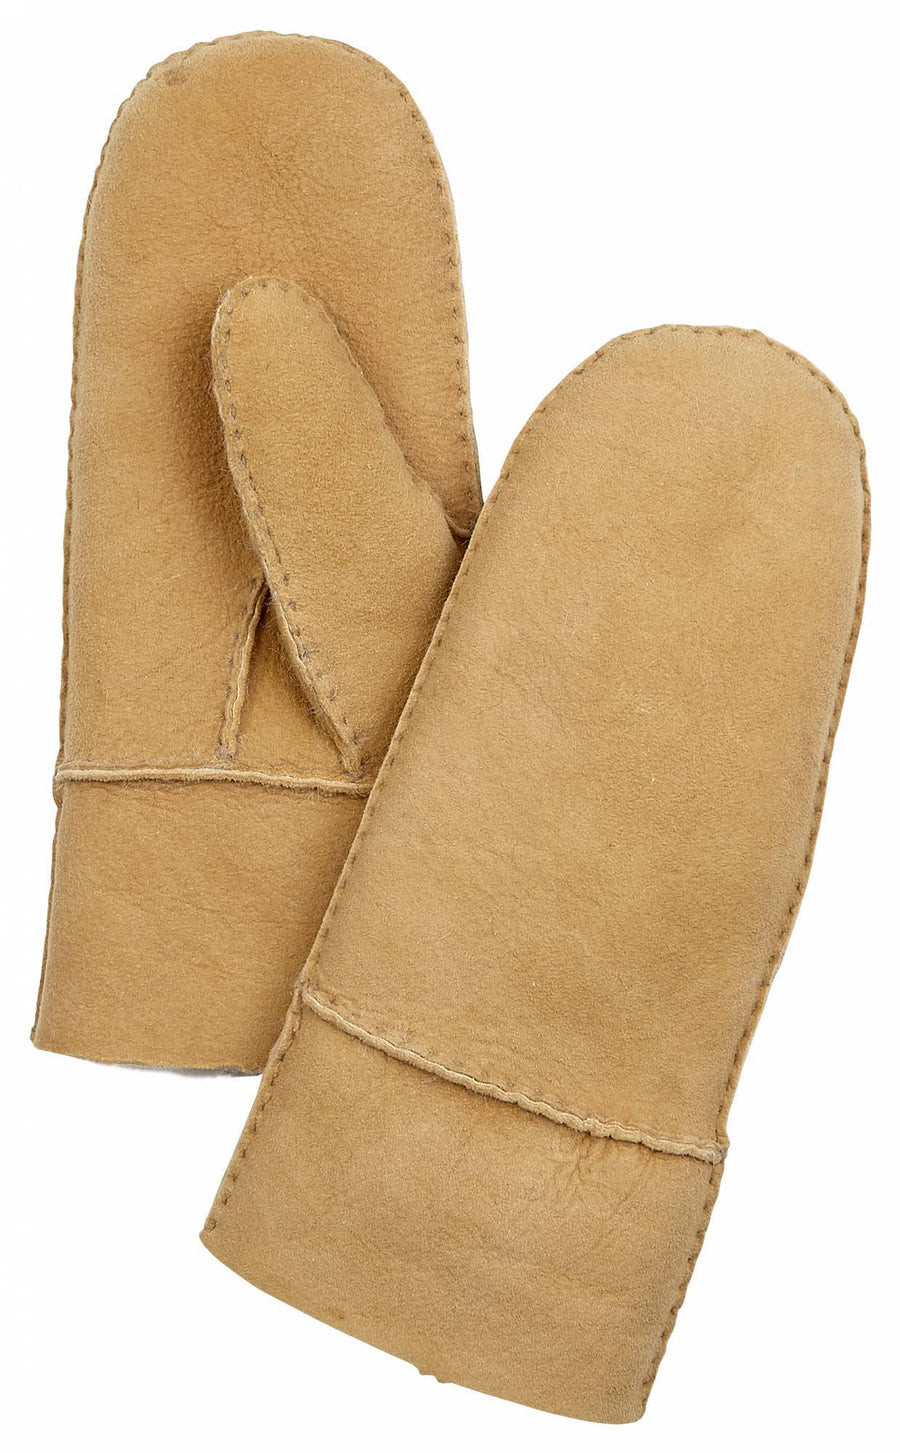 WOMEN'S SHEARLING MITTENS